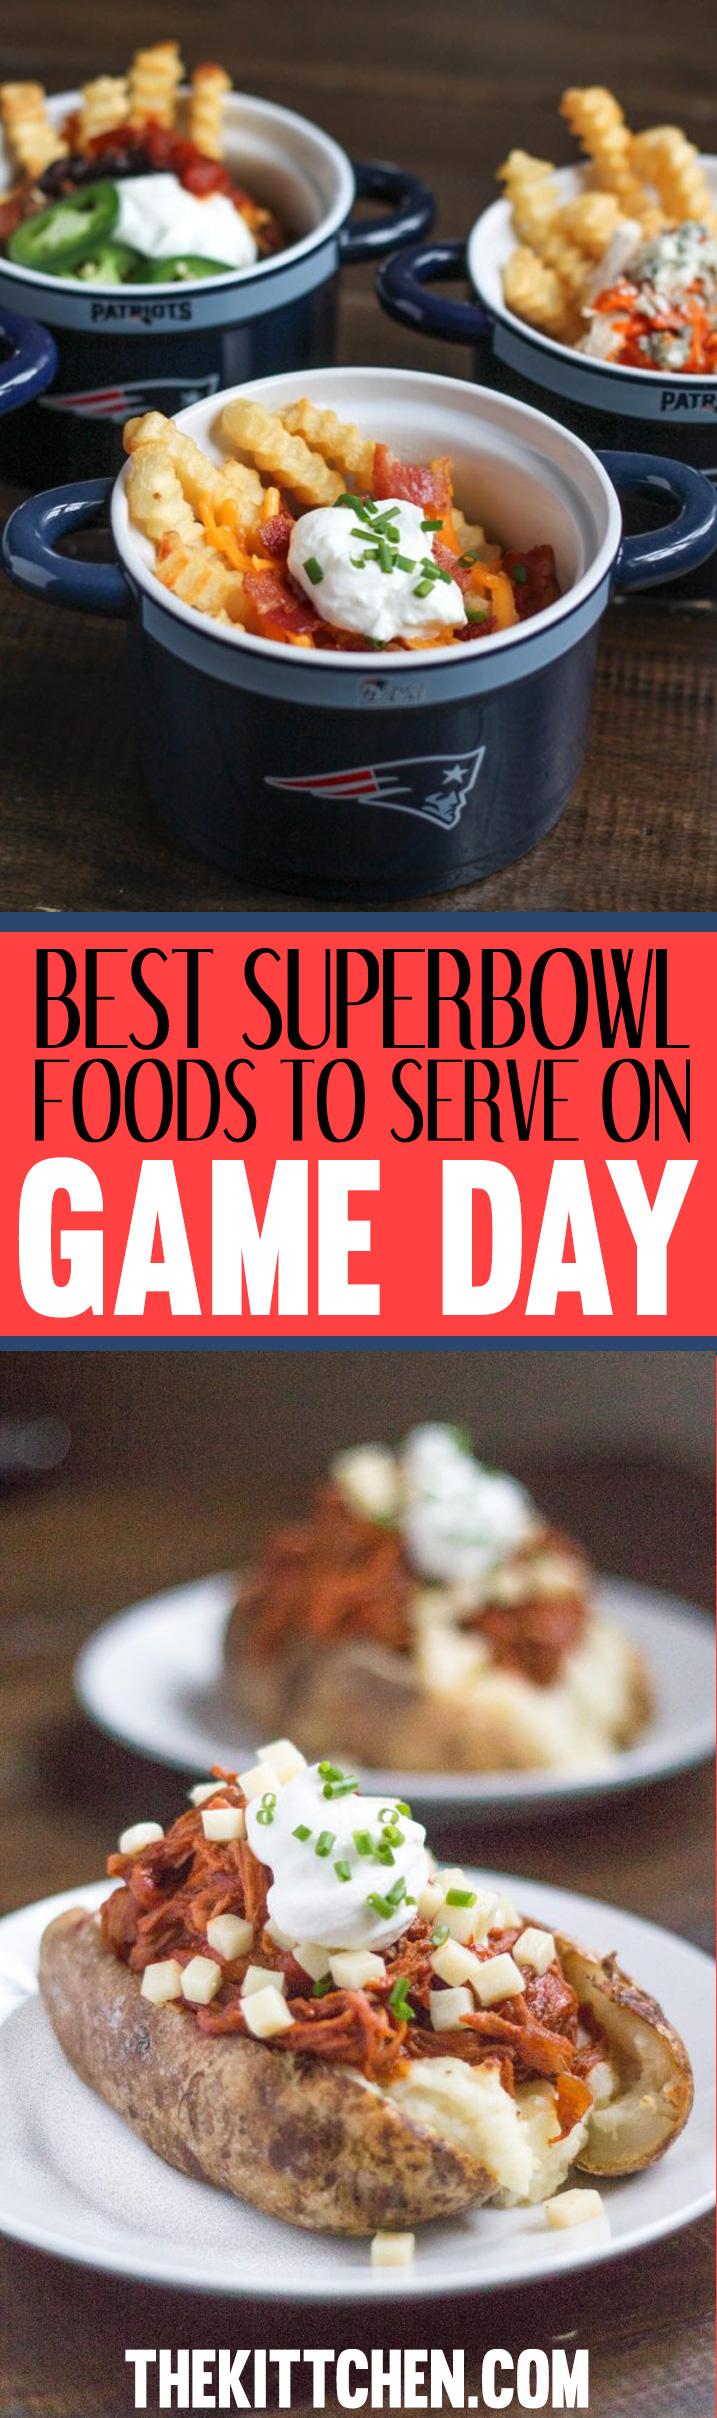 Best Super Bowl Foods to Serve on Game Day